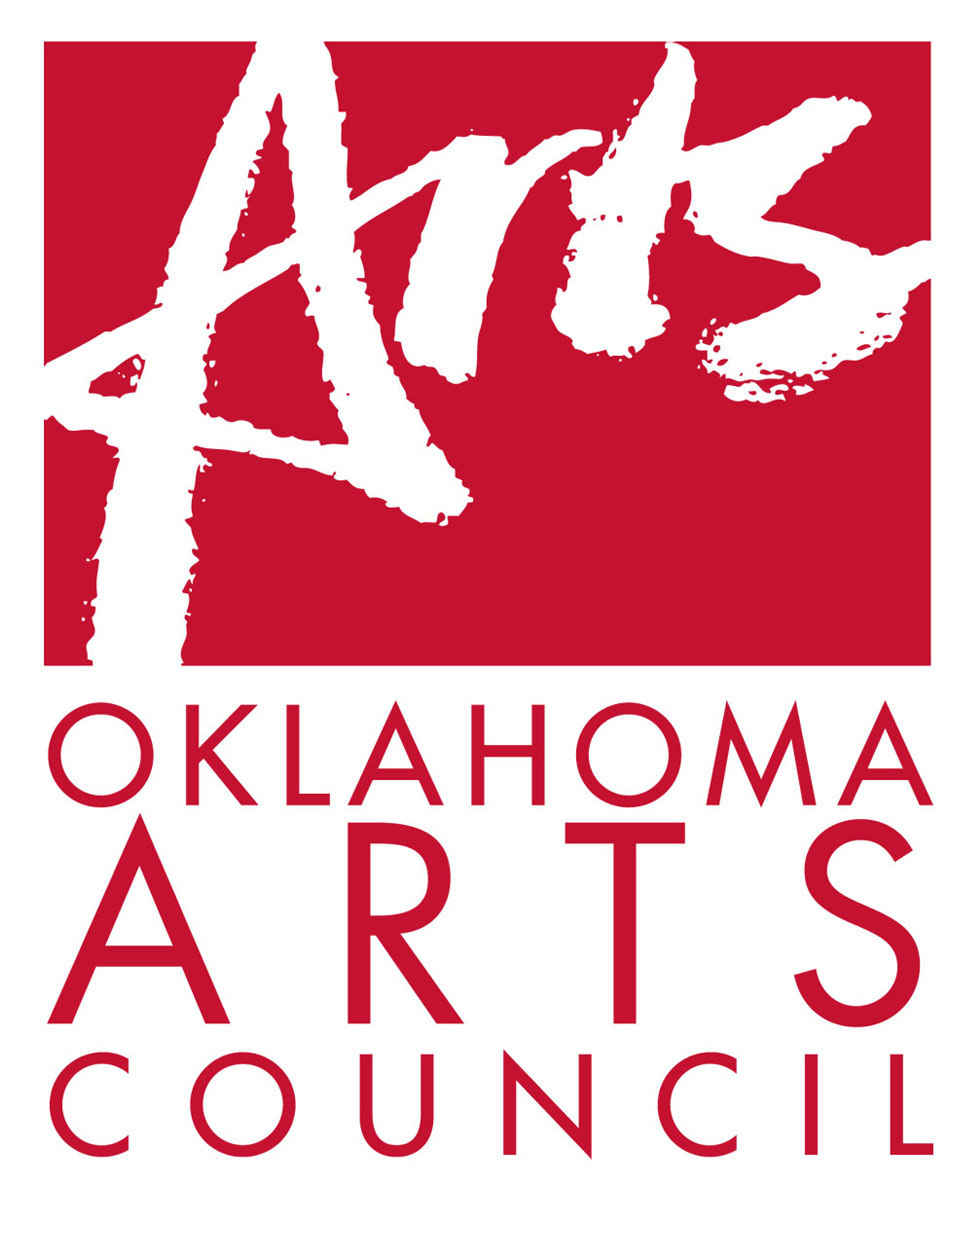 Red-and-white logo featuring the following text: Oklahoma Arts Council